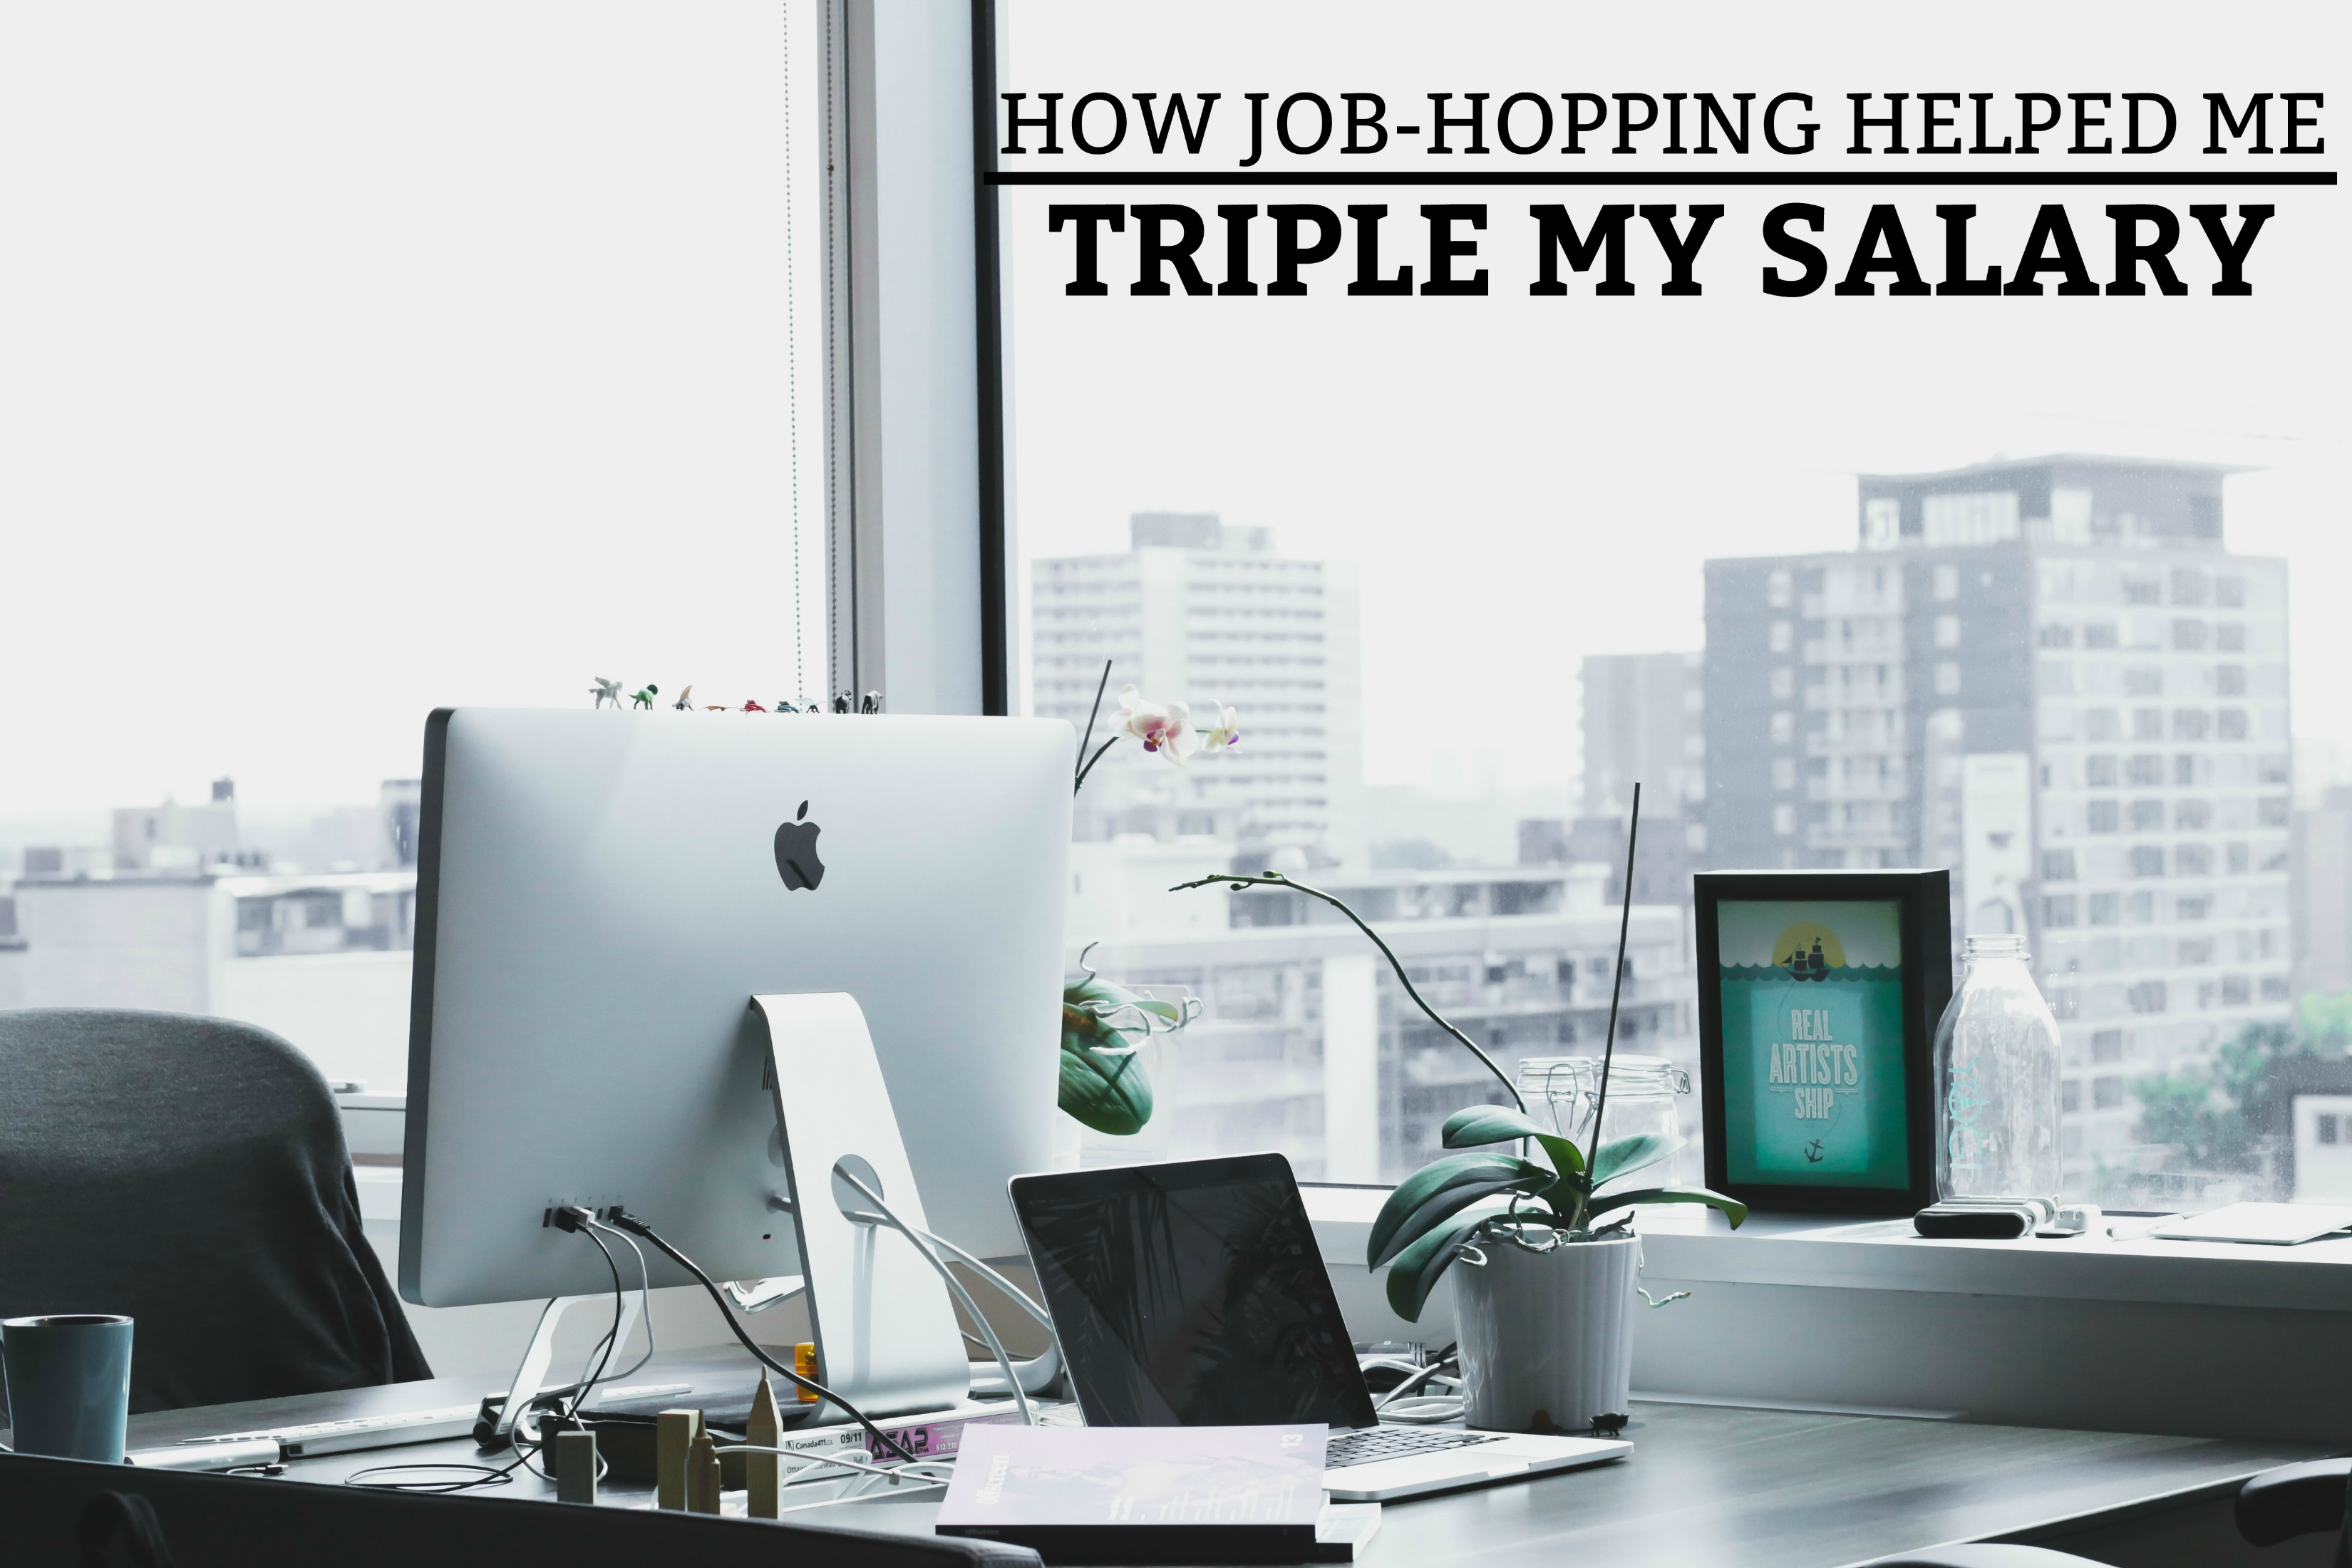 How Job-Hopping Helped Me Triple My Salary - an example of how job-hopping can qualify you for your dream job and additional income. www.tradingaverage.com